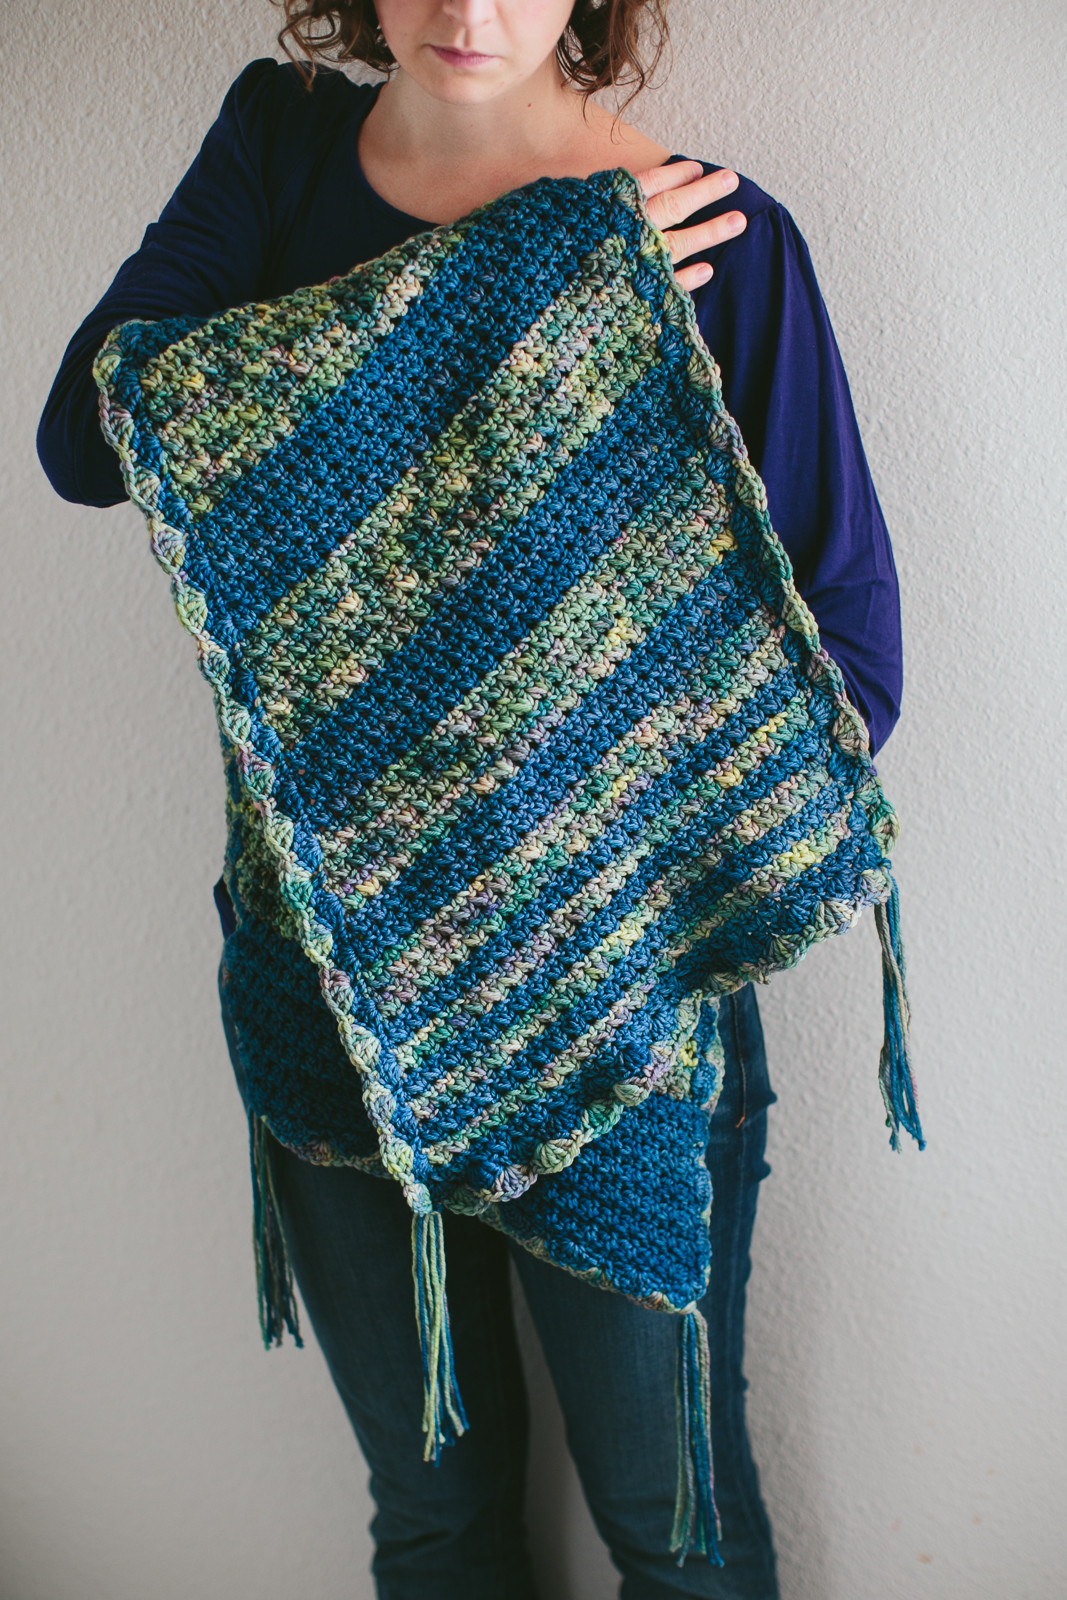 Best Of Free Pattern the Power Of A Prayer Shawl Prayer Shawl Patterns Free Of Charming 45 Models Prayer Shawl Patterns Free